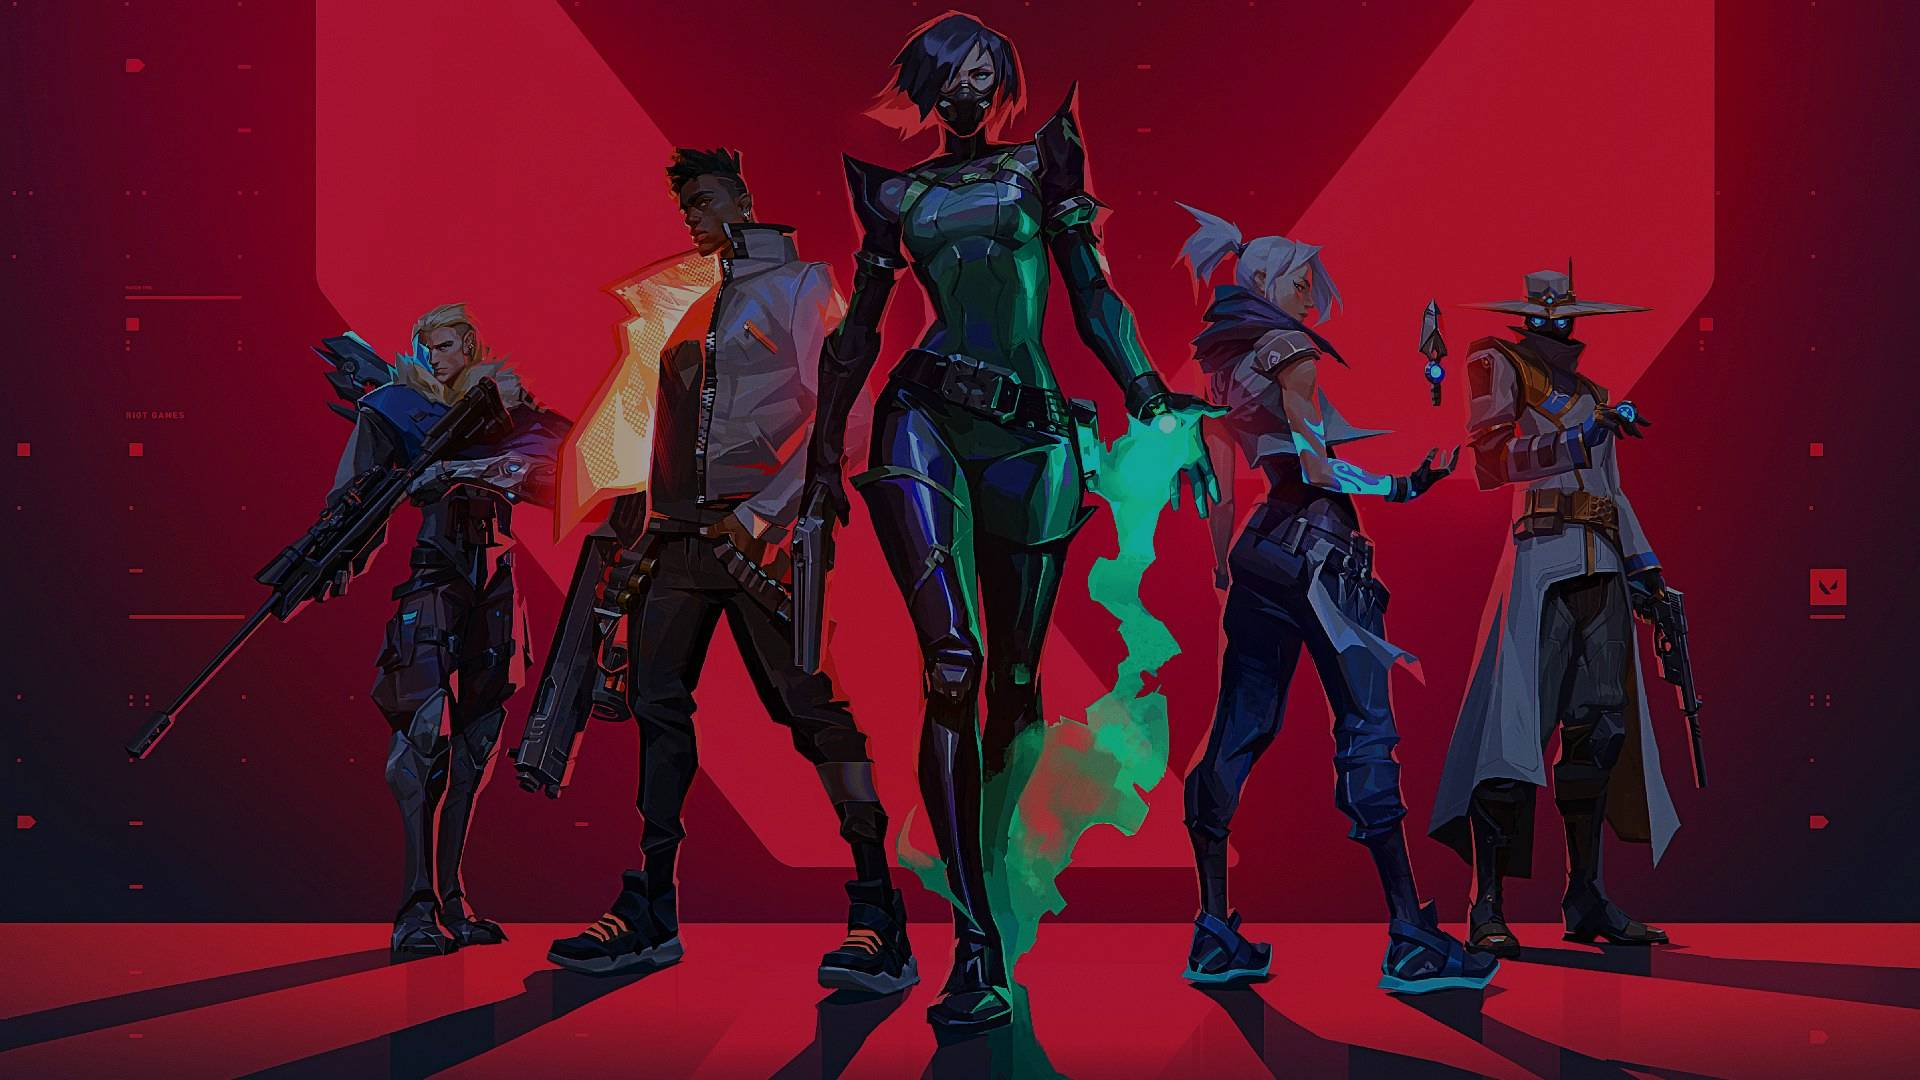 The initial 5 members of Valorant Agents from left to right: Sova, Phoenix, Viper, Jett, Cypher